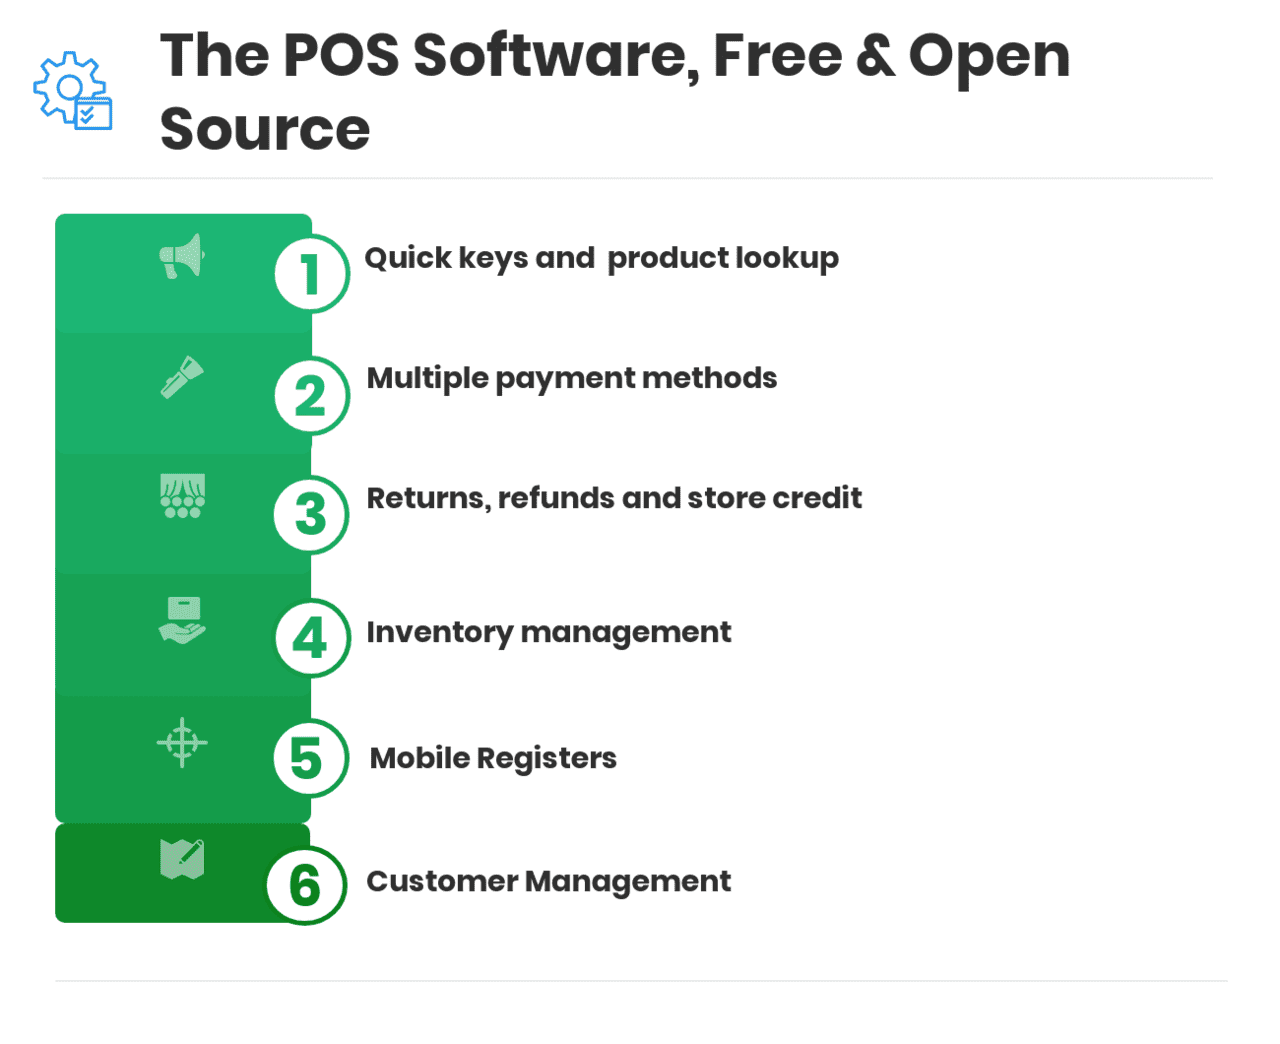 POS Software, Free & Open Source